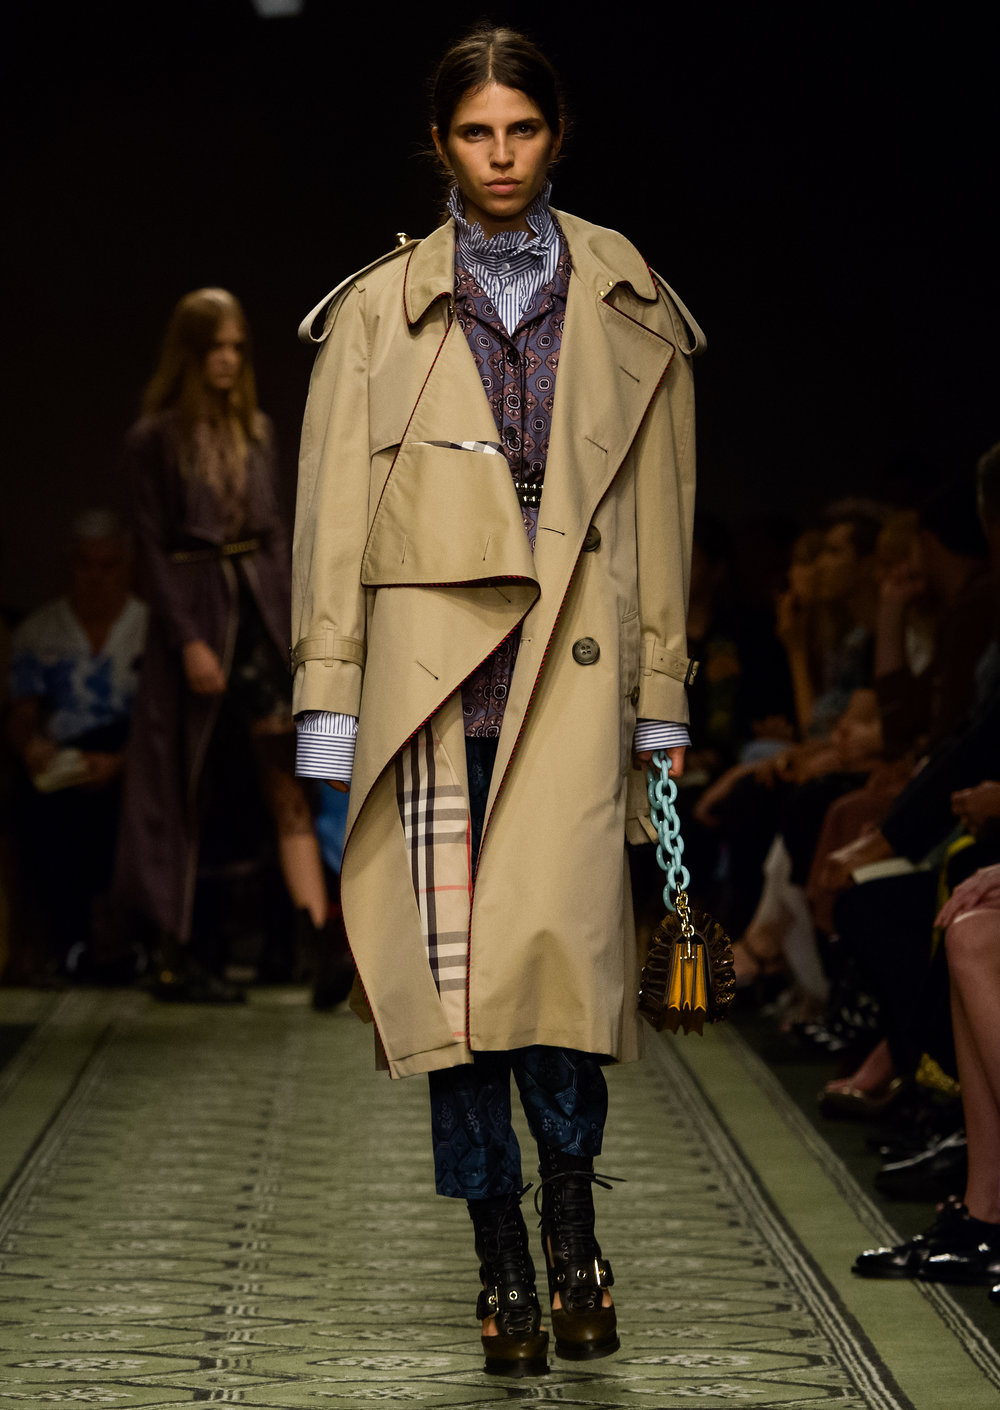 Burberry September 2016 Collection - Look 57.jpg